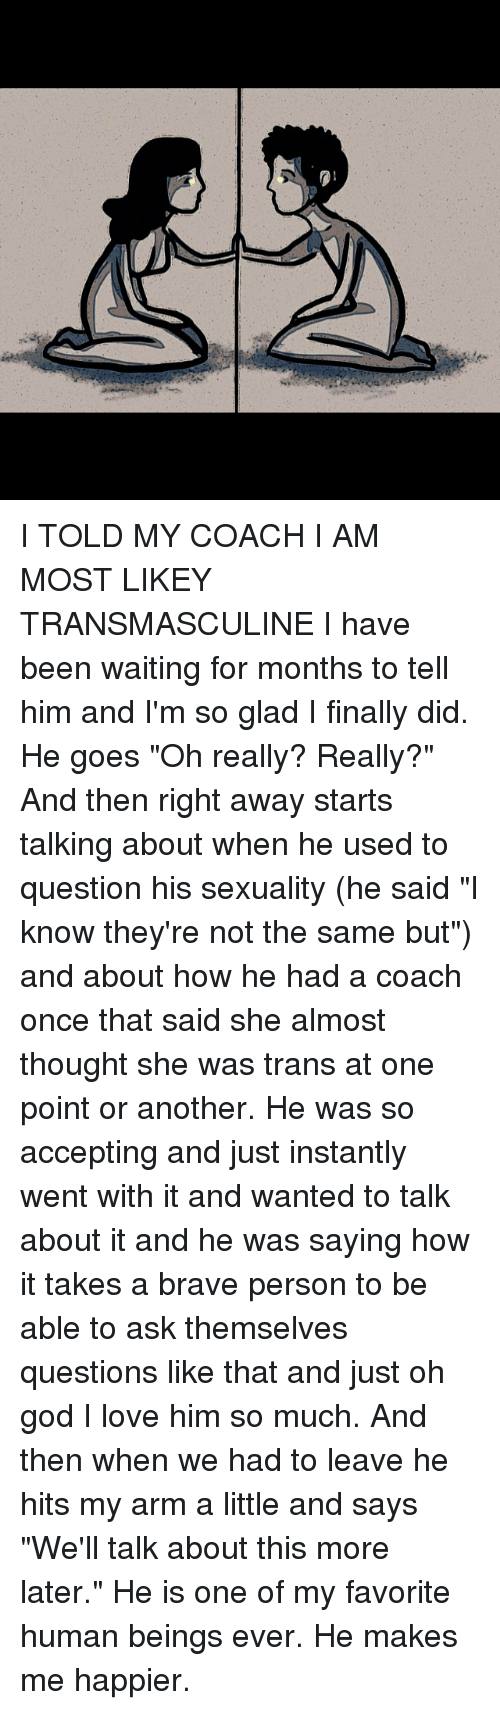 I TOLD MY COACH I AM MOST LIKEY TRANSMASCULINE I Have Been